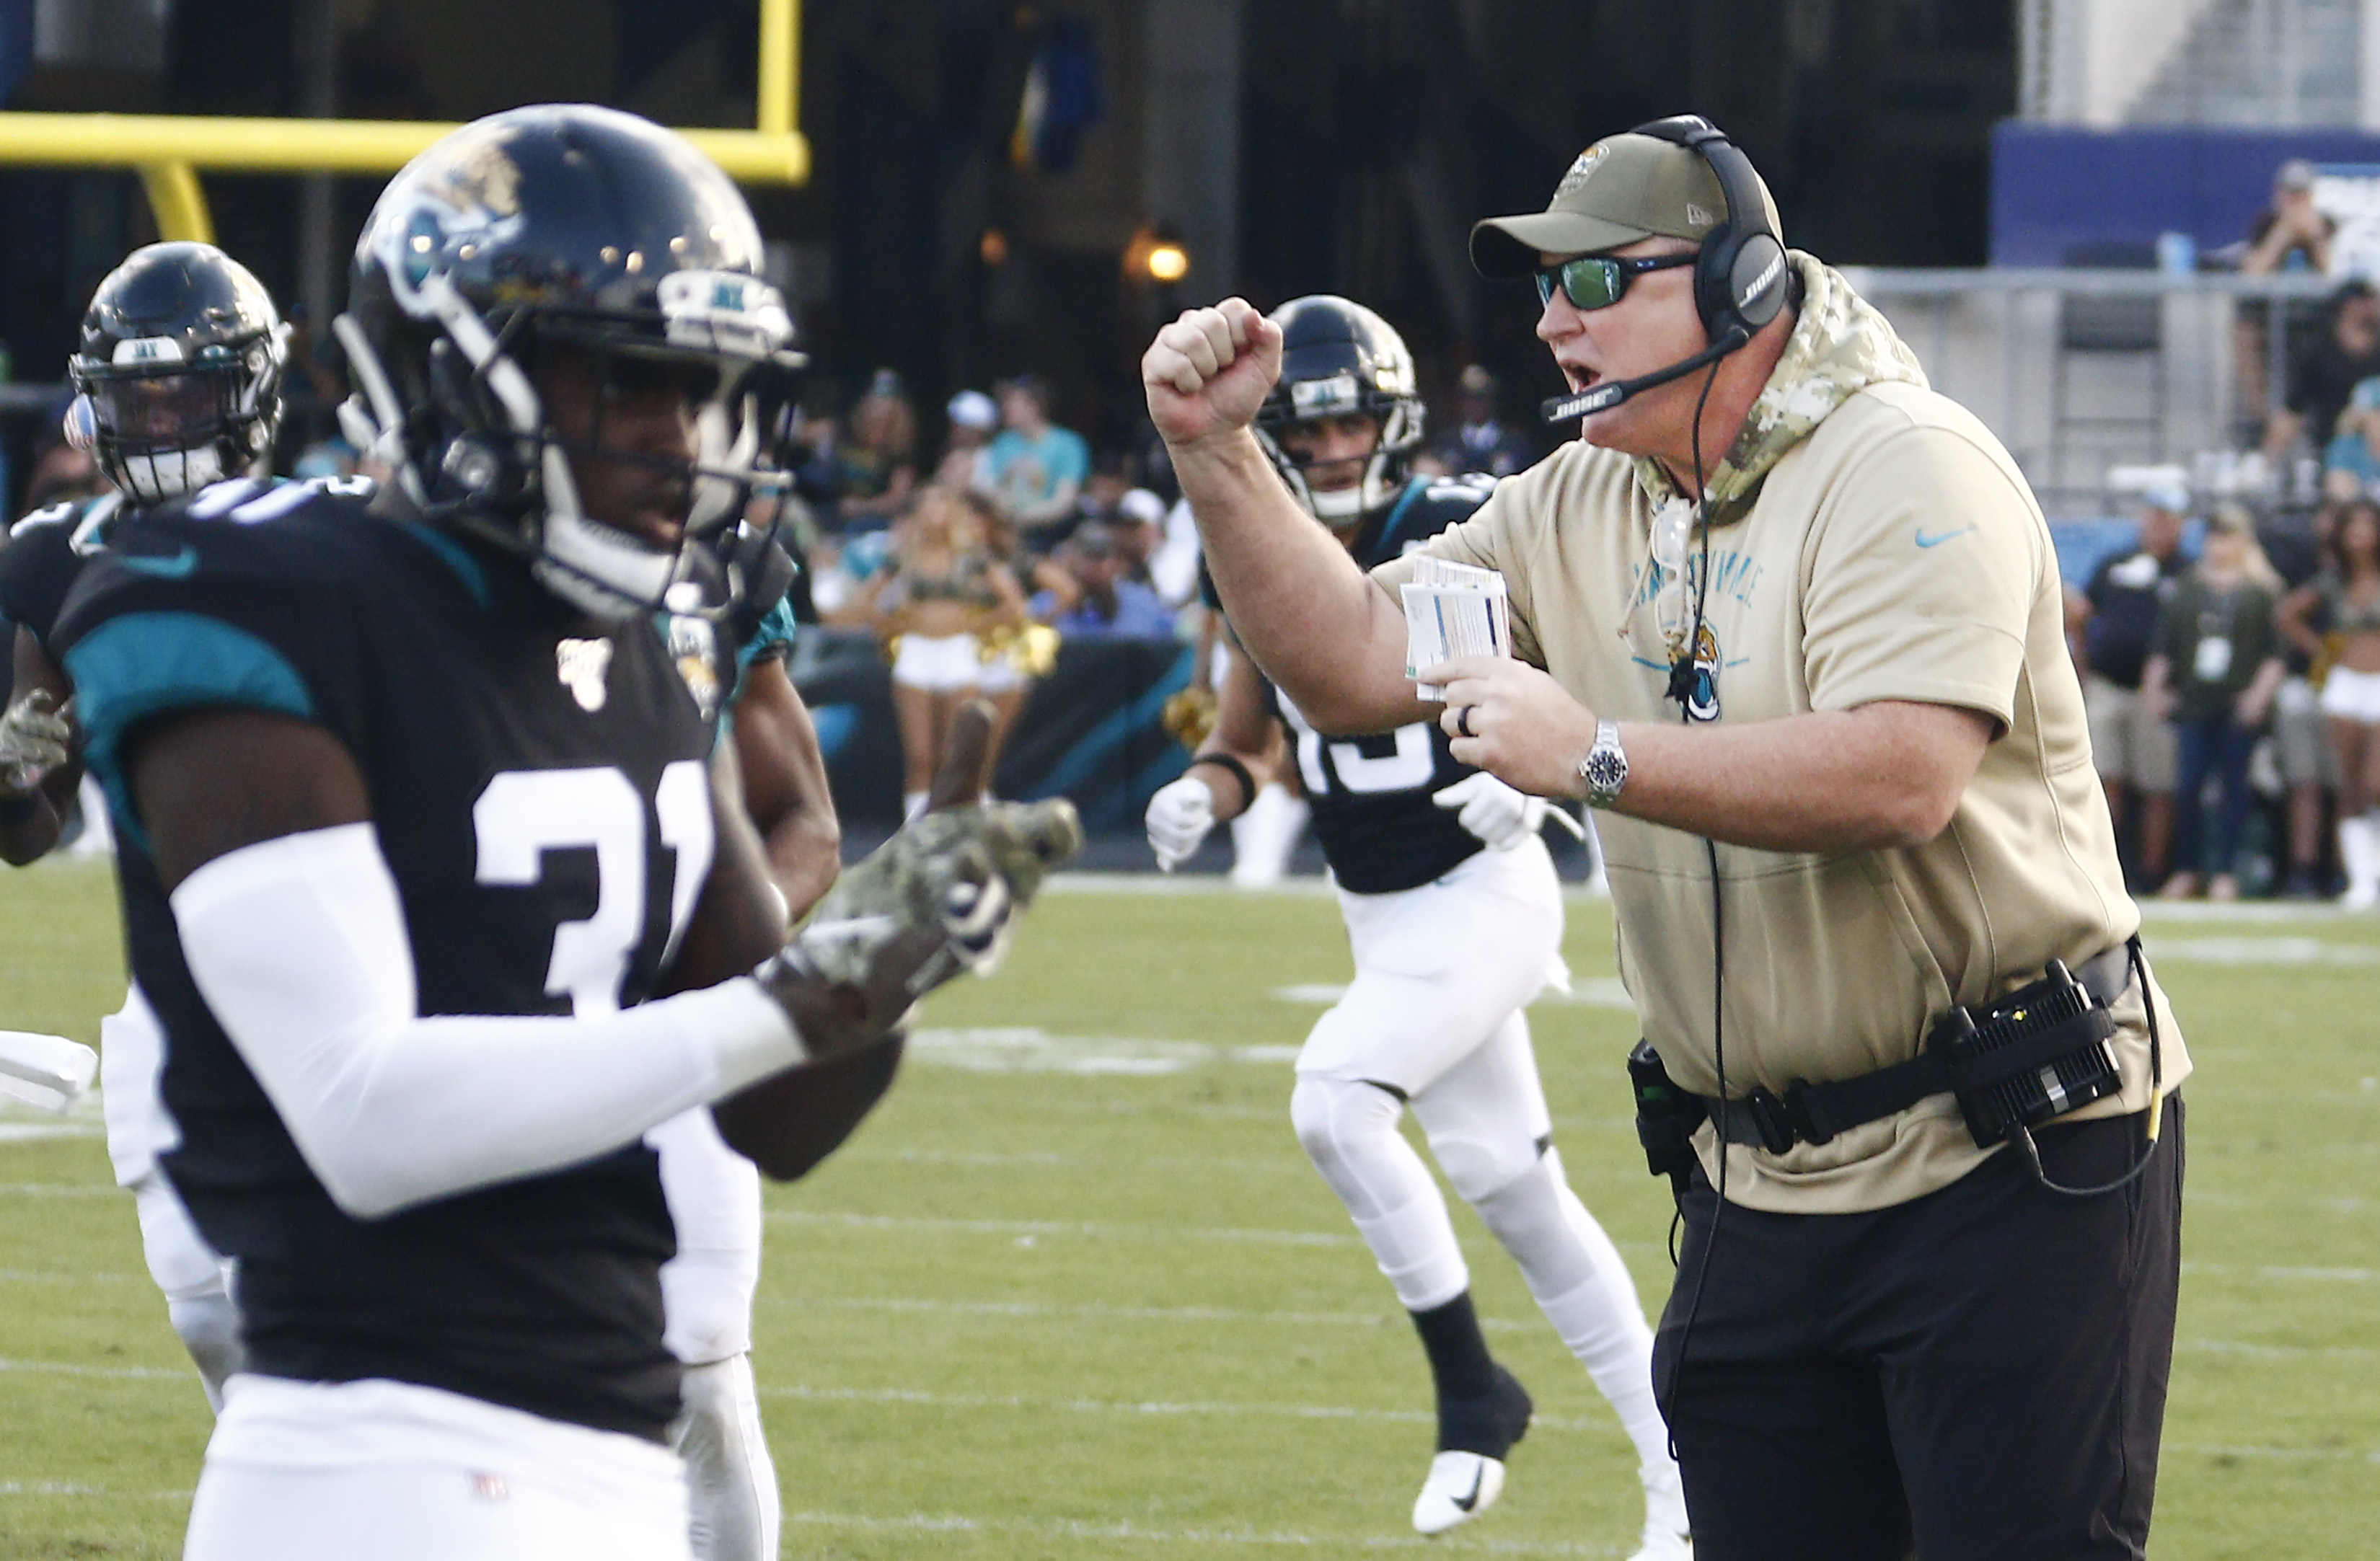 Report: Doug Marrone 'Likely' Gone as Jaguars Coach After Season